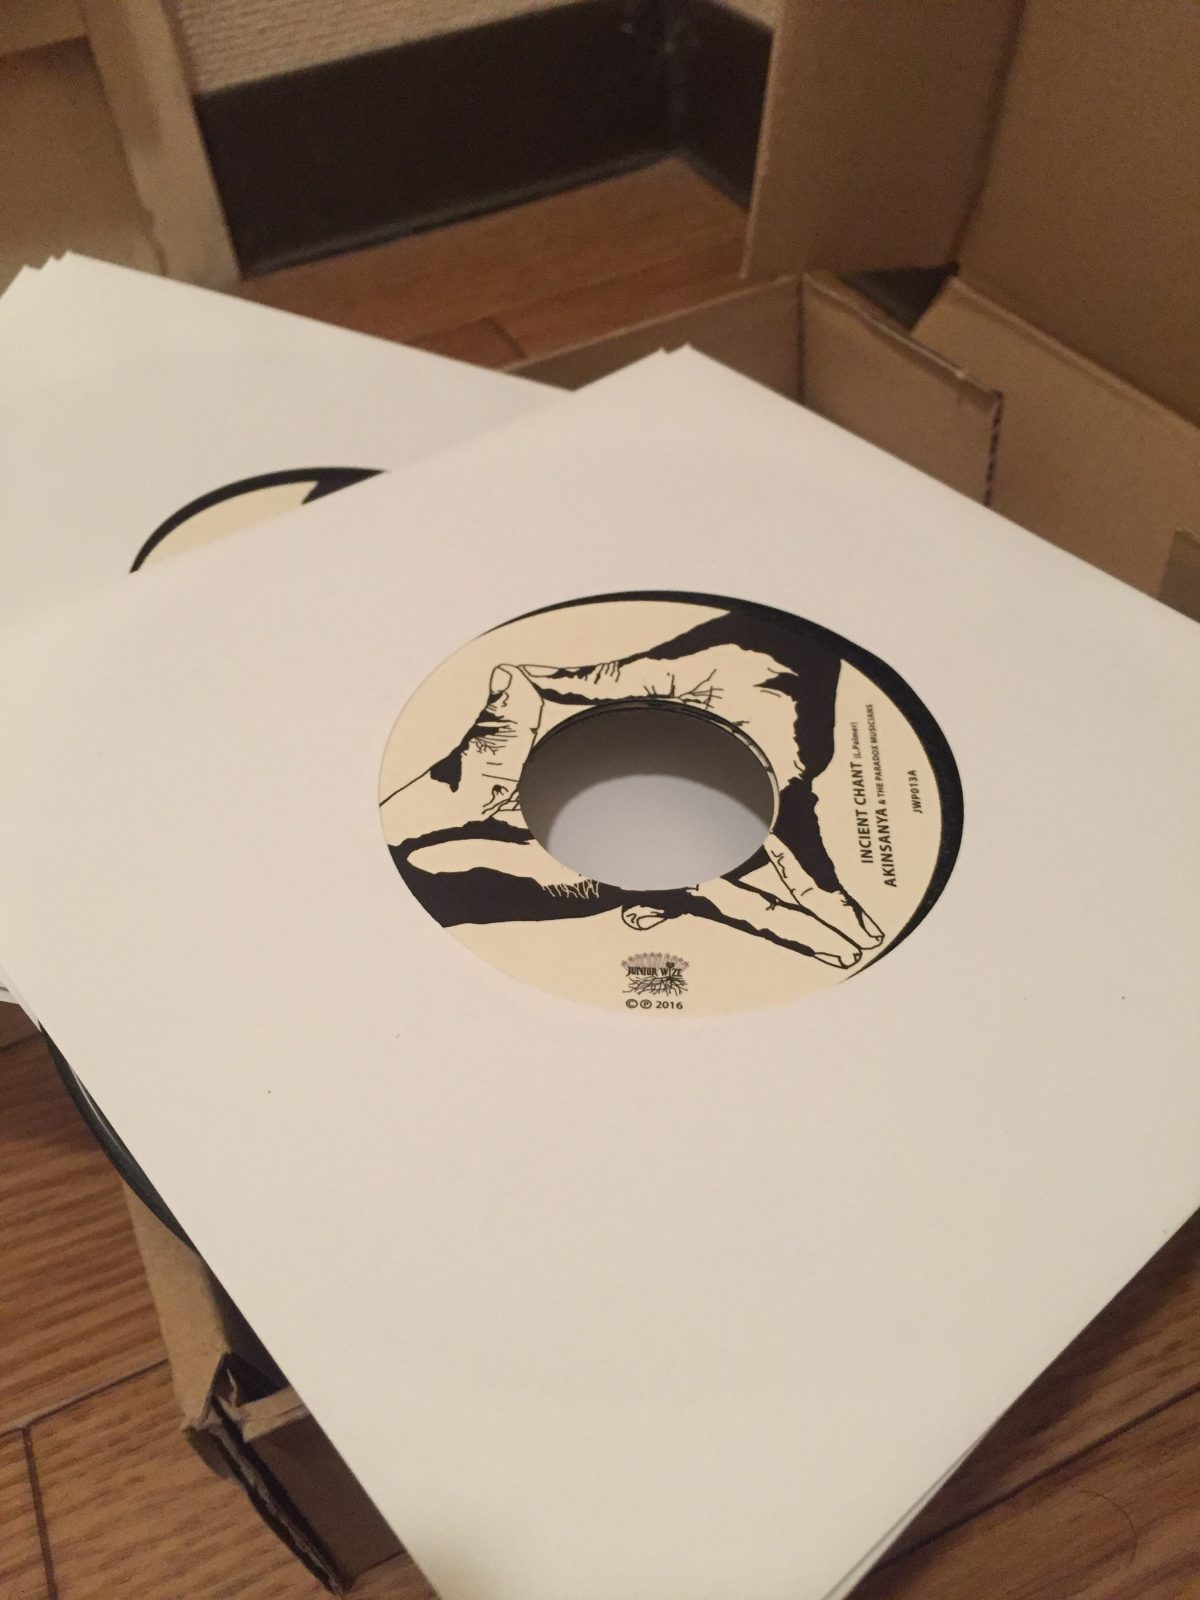 "Upcoming release 7"" vinyl was arrive!!!"